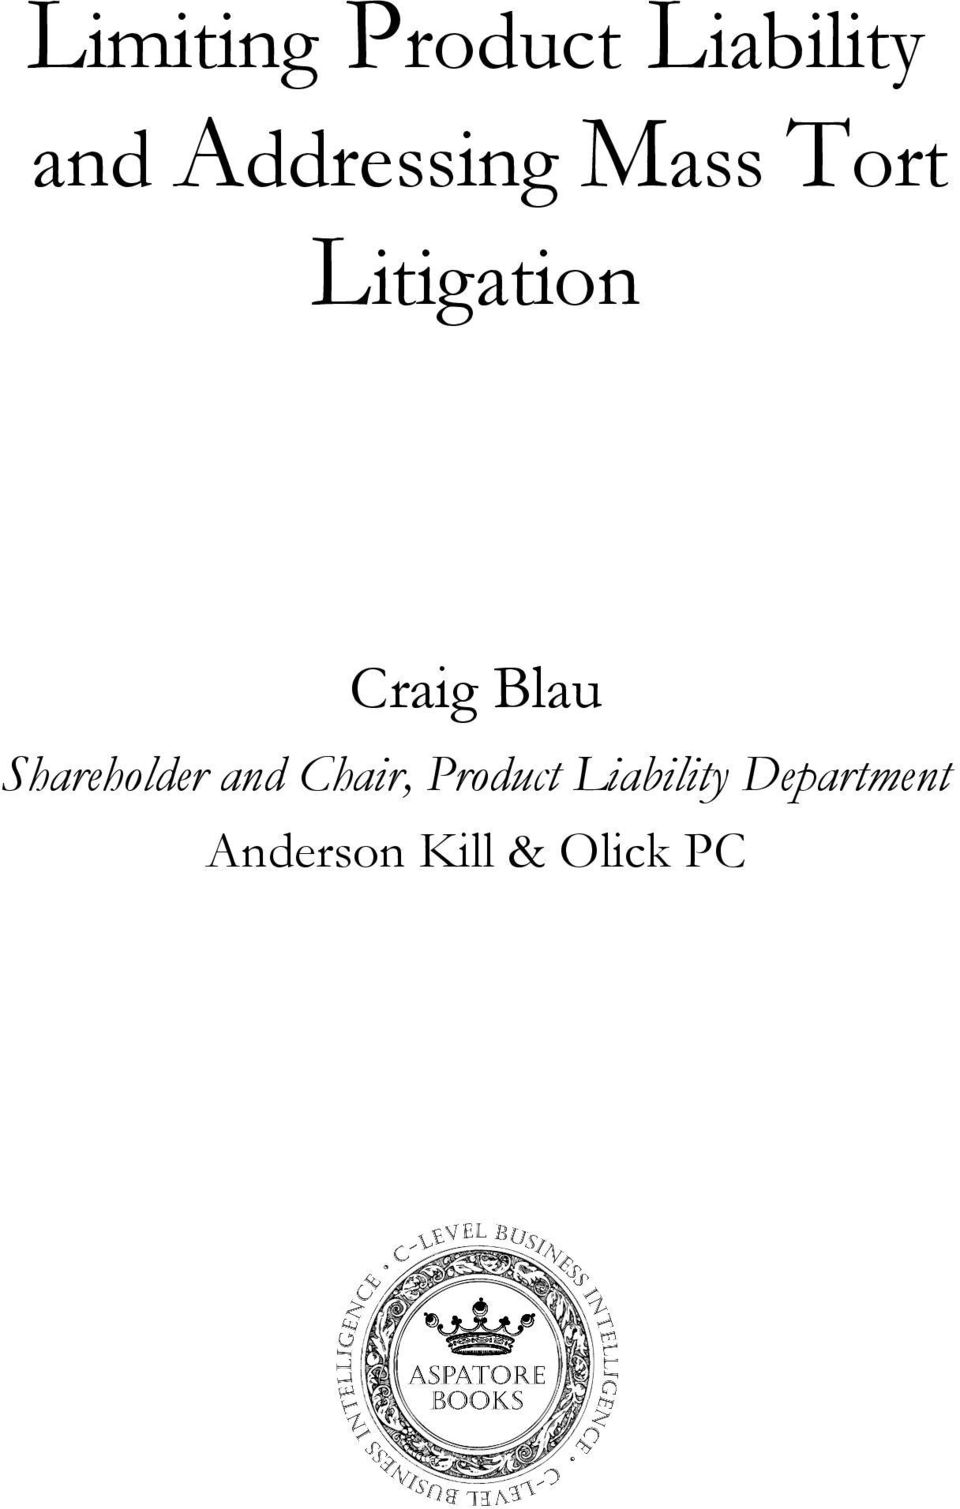 Blau Shareholder and Chair, Product